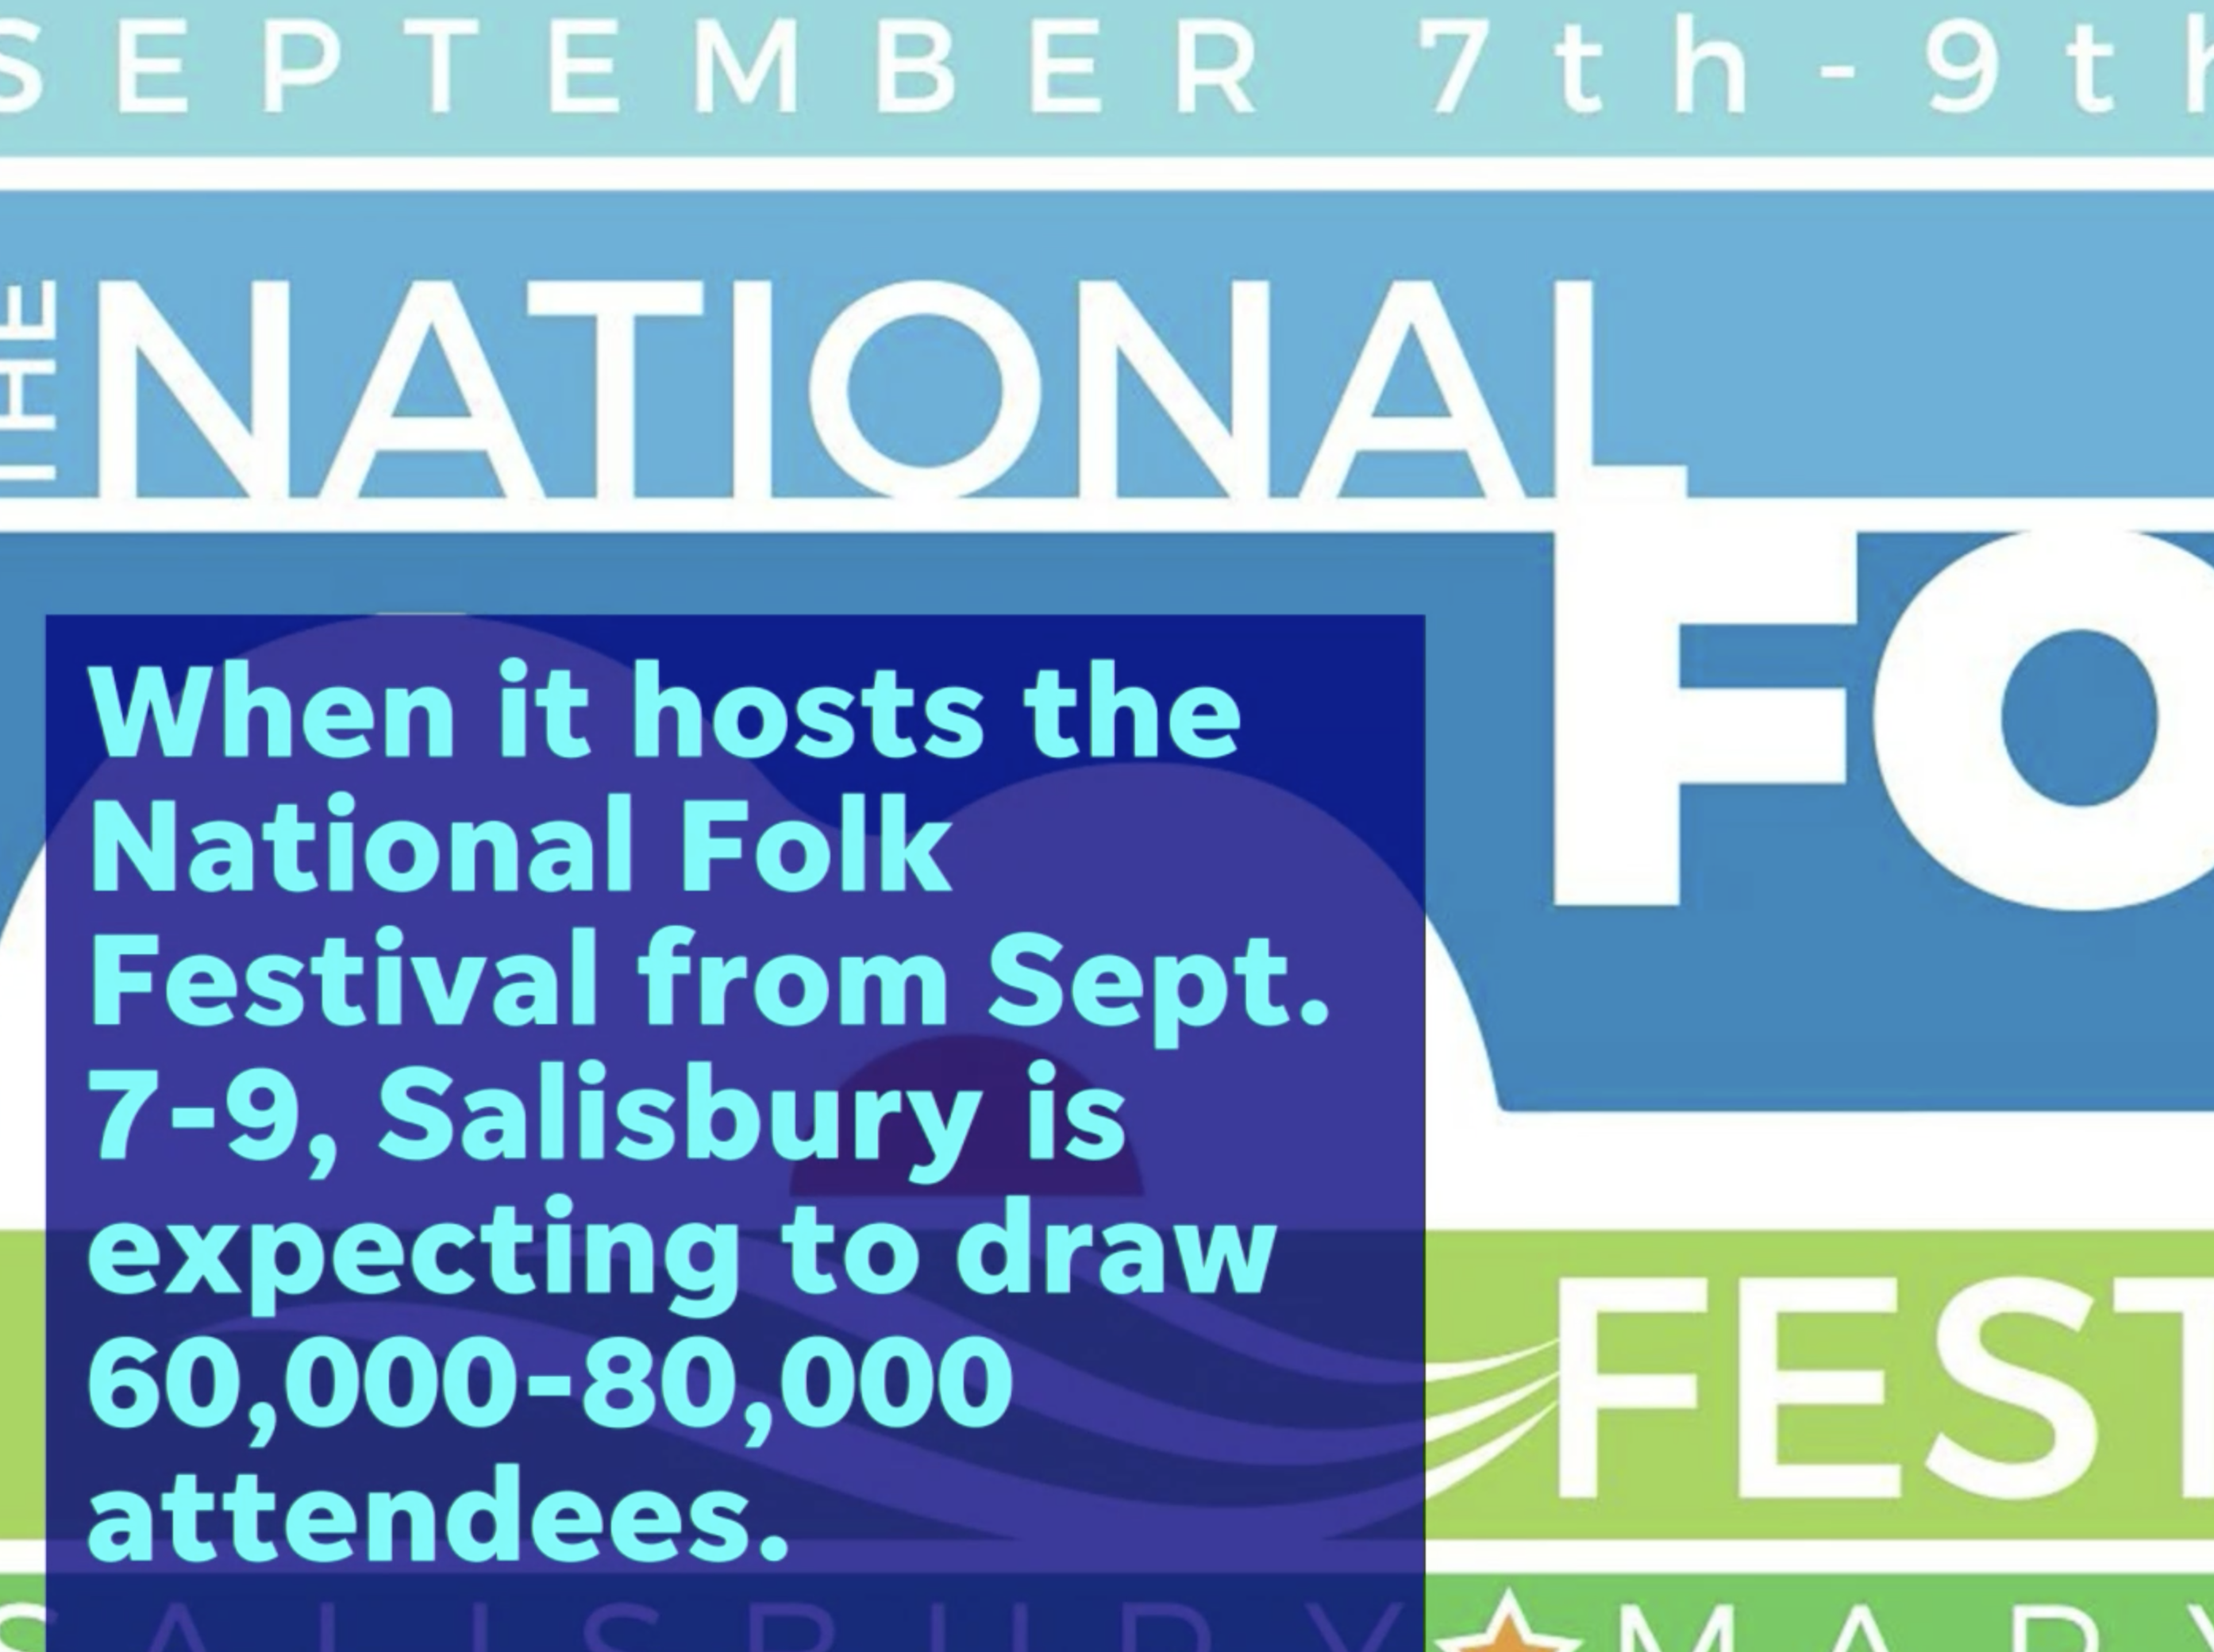 National Folk Festival 2018: What you need to know for Salisbury's big show